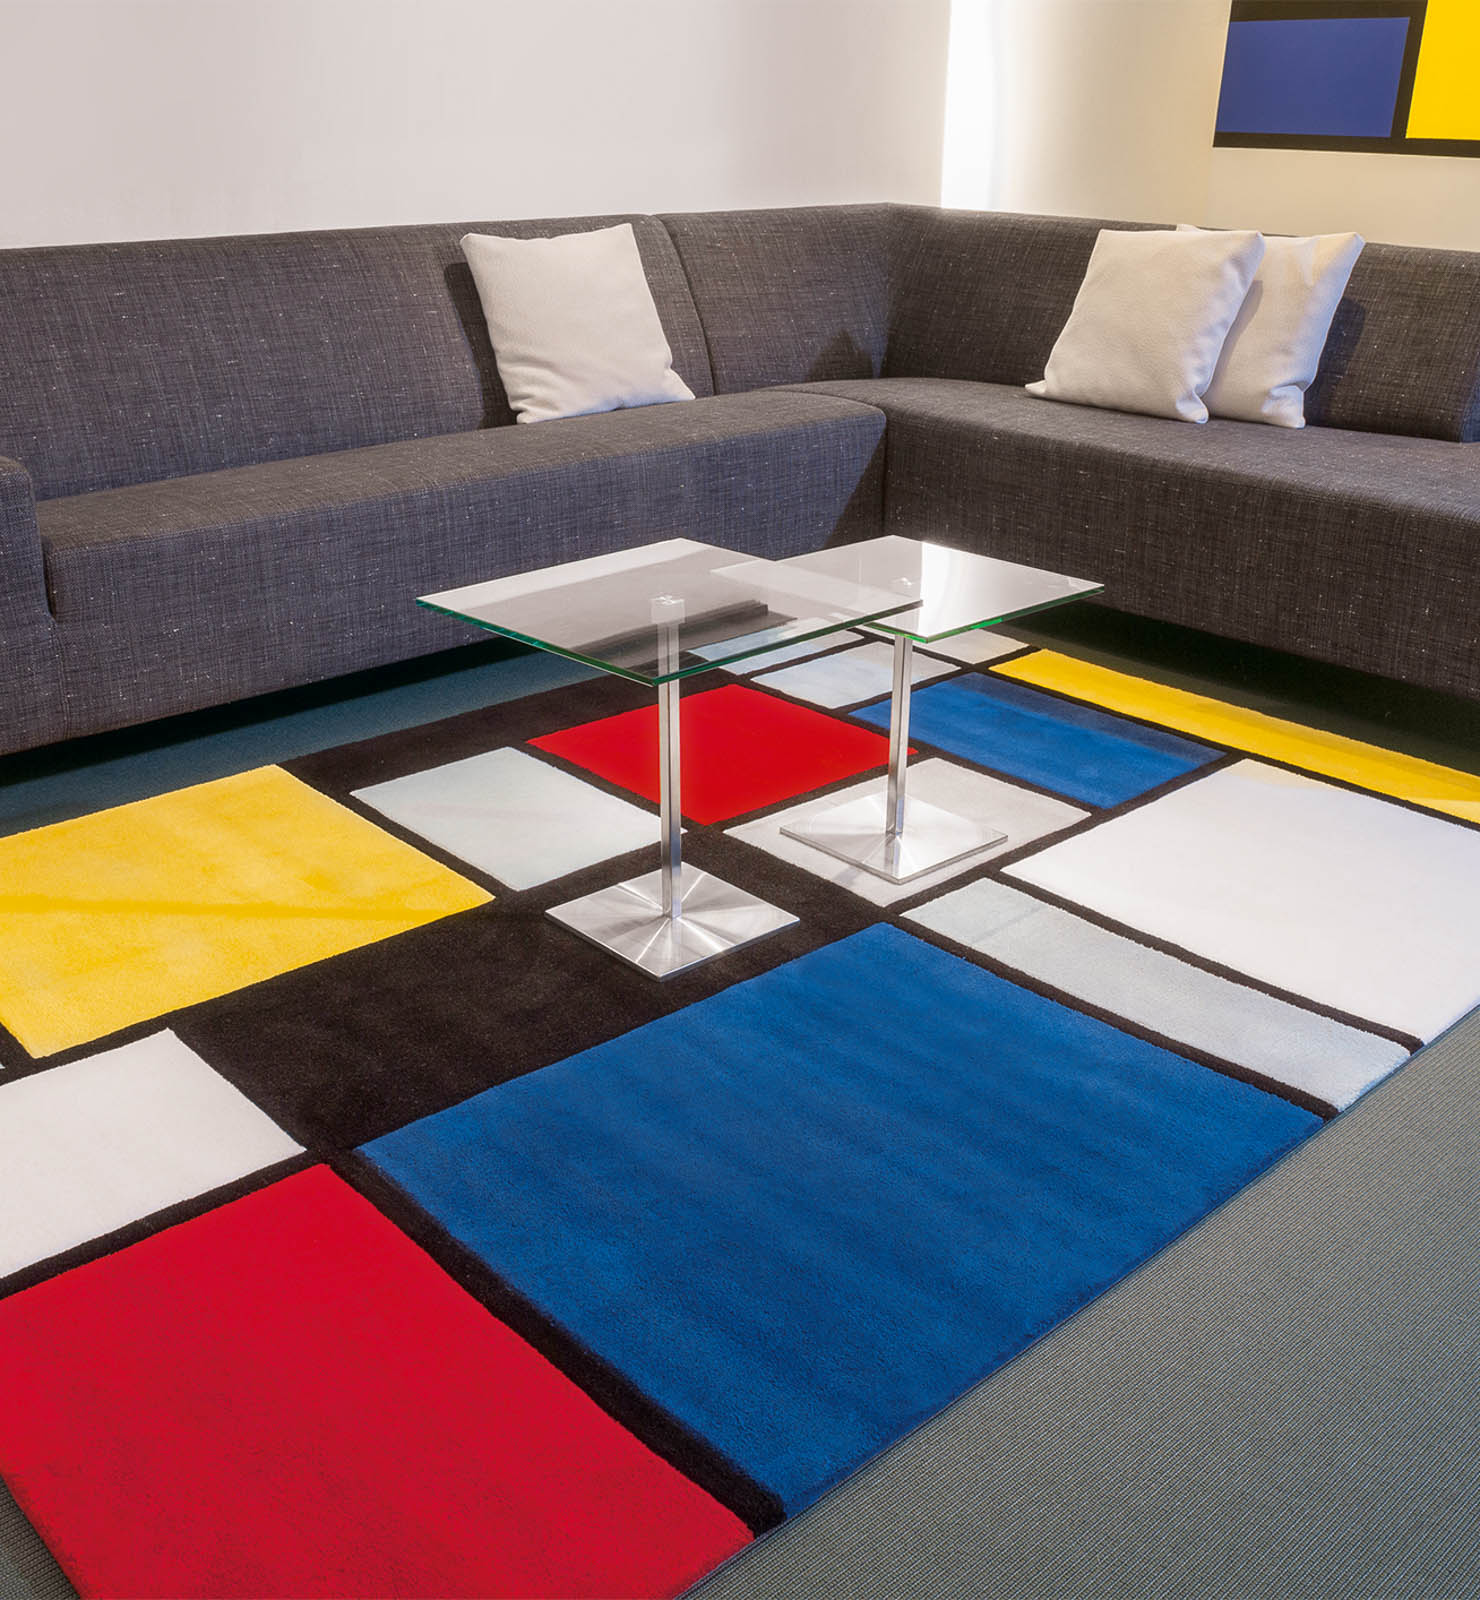 Coloured Cubes Rugs 3089 73